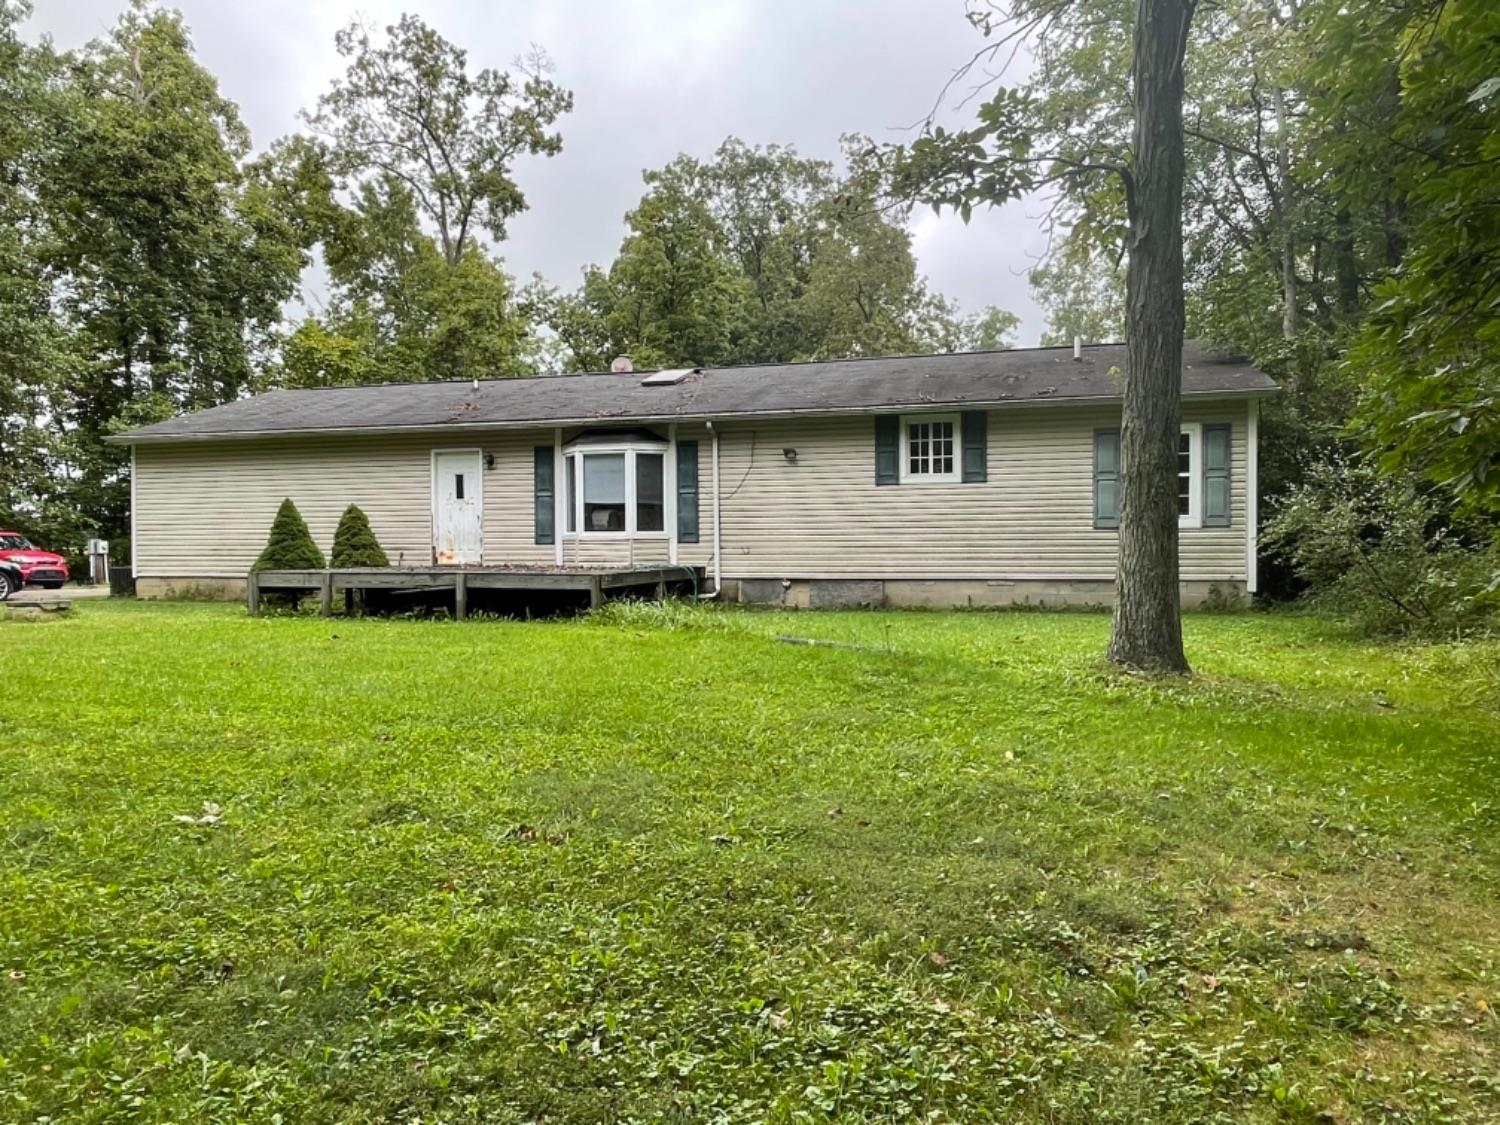 Photo 2 for 7052 Number Five Road Wayne Twp. (Clermont Co.), OH 45162